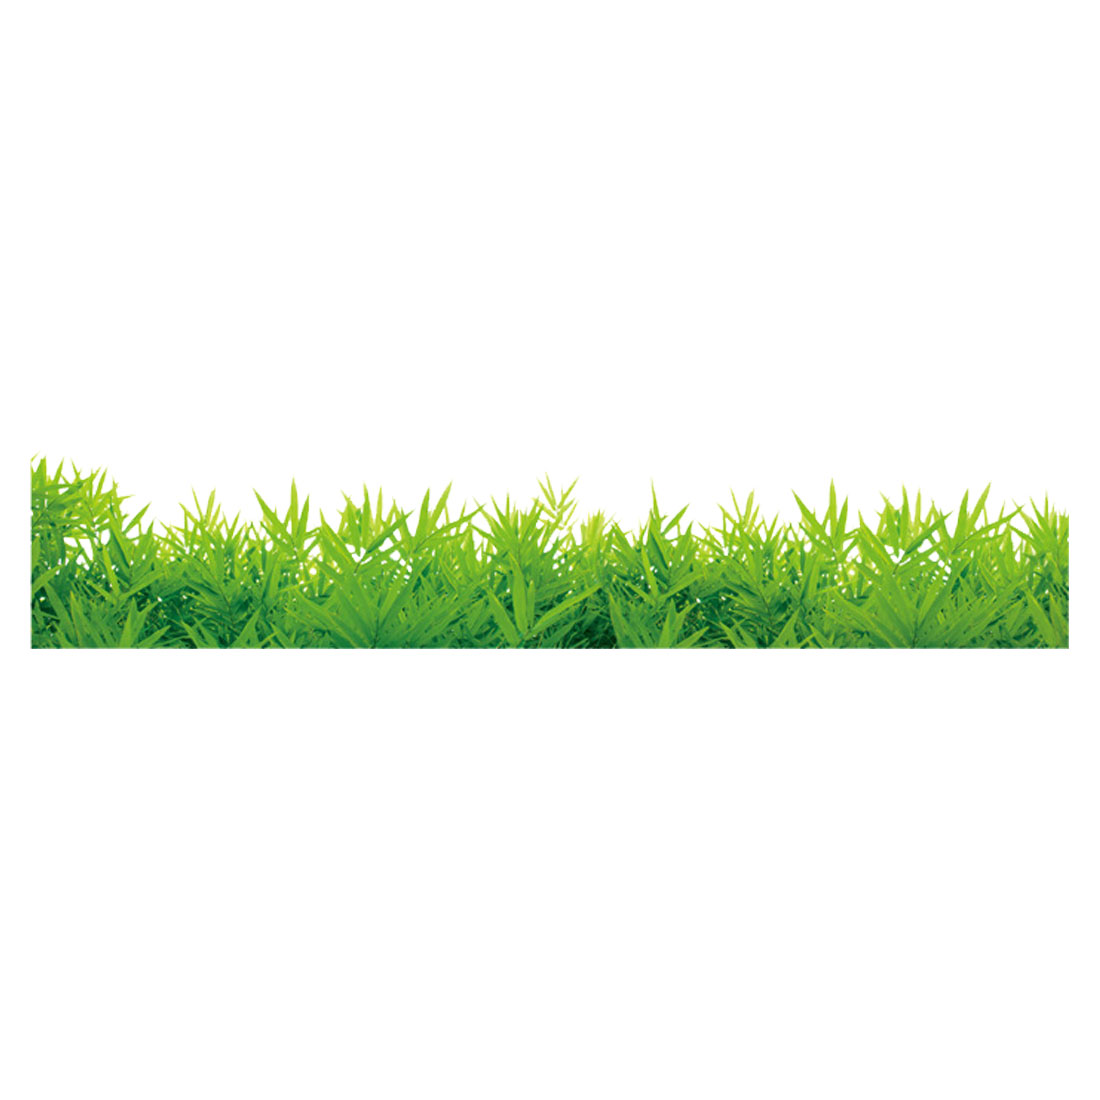 Grass Pattern Wall Sticker Self-stick Removable Decal for Living Room Bedroom